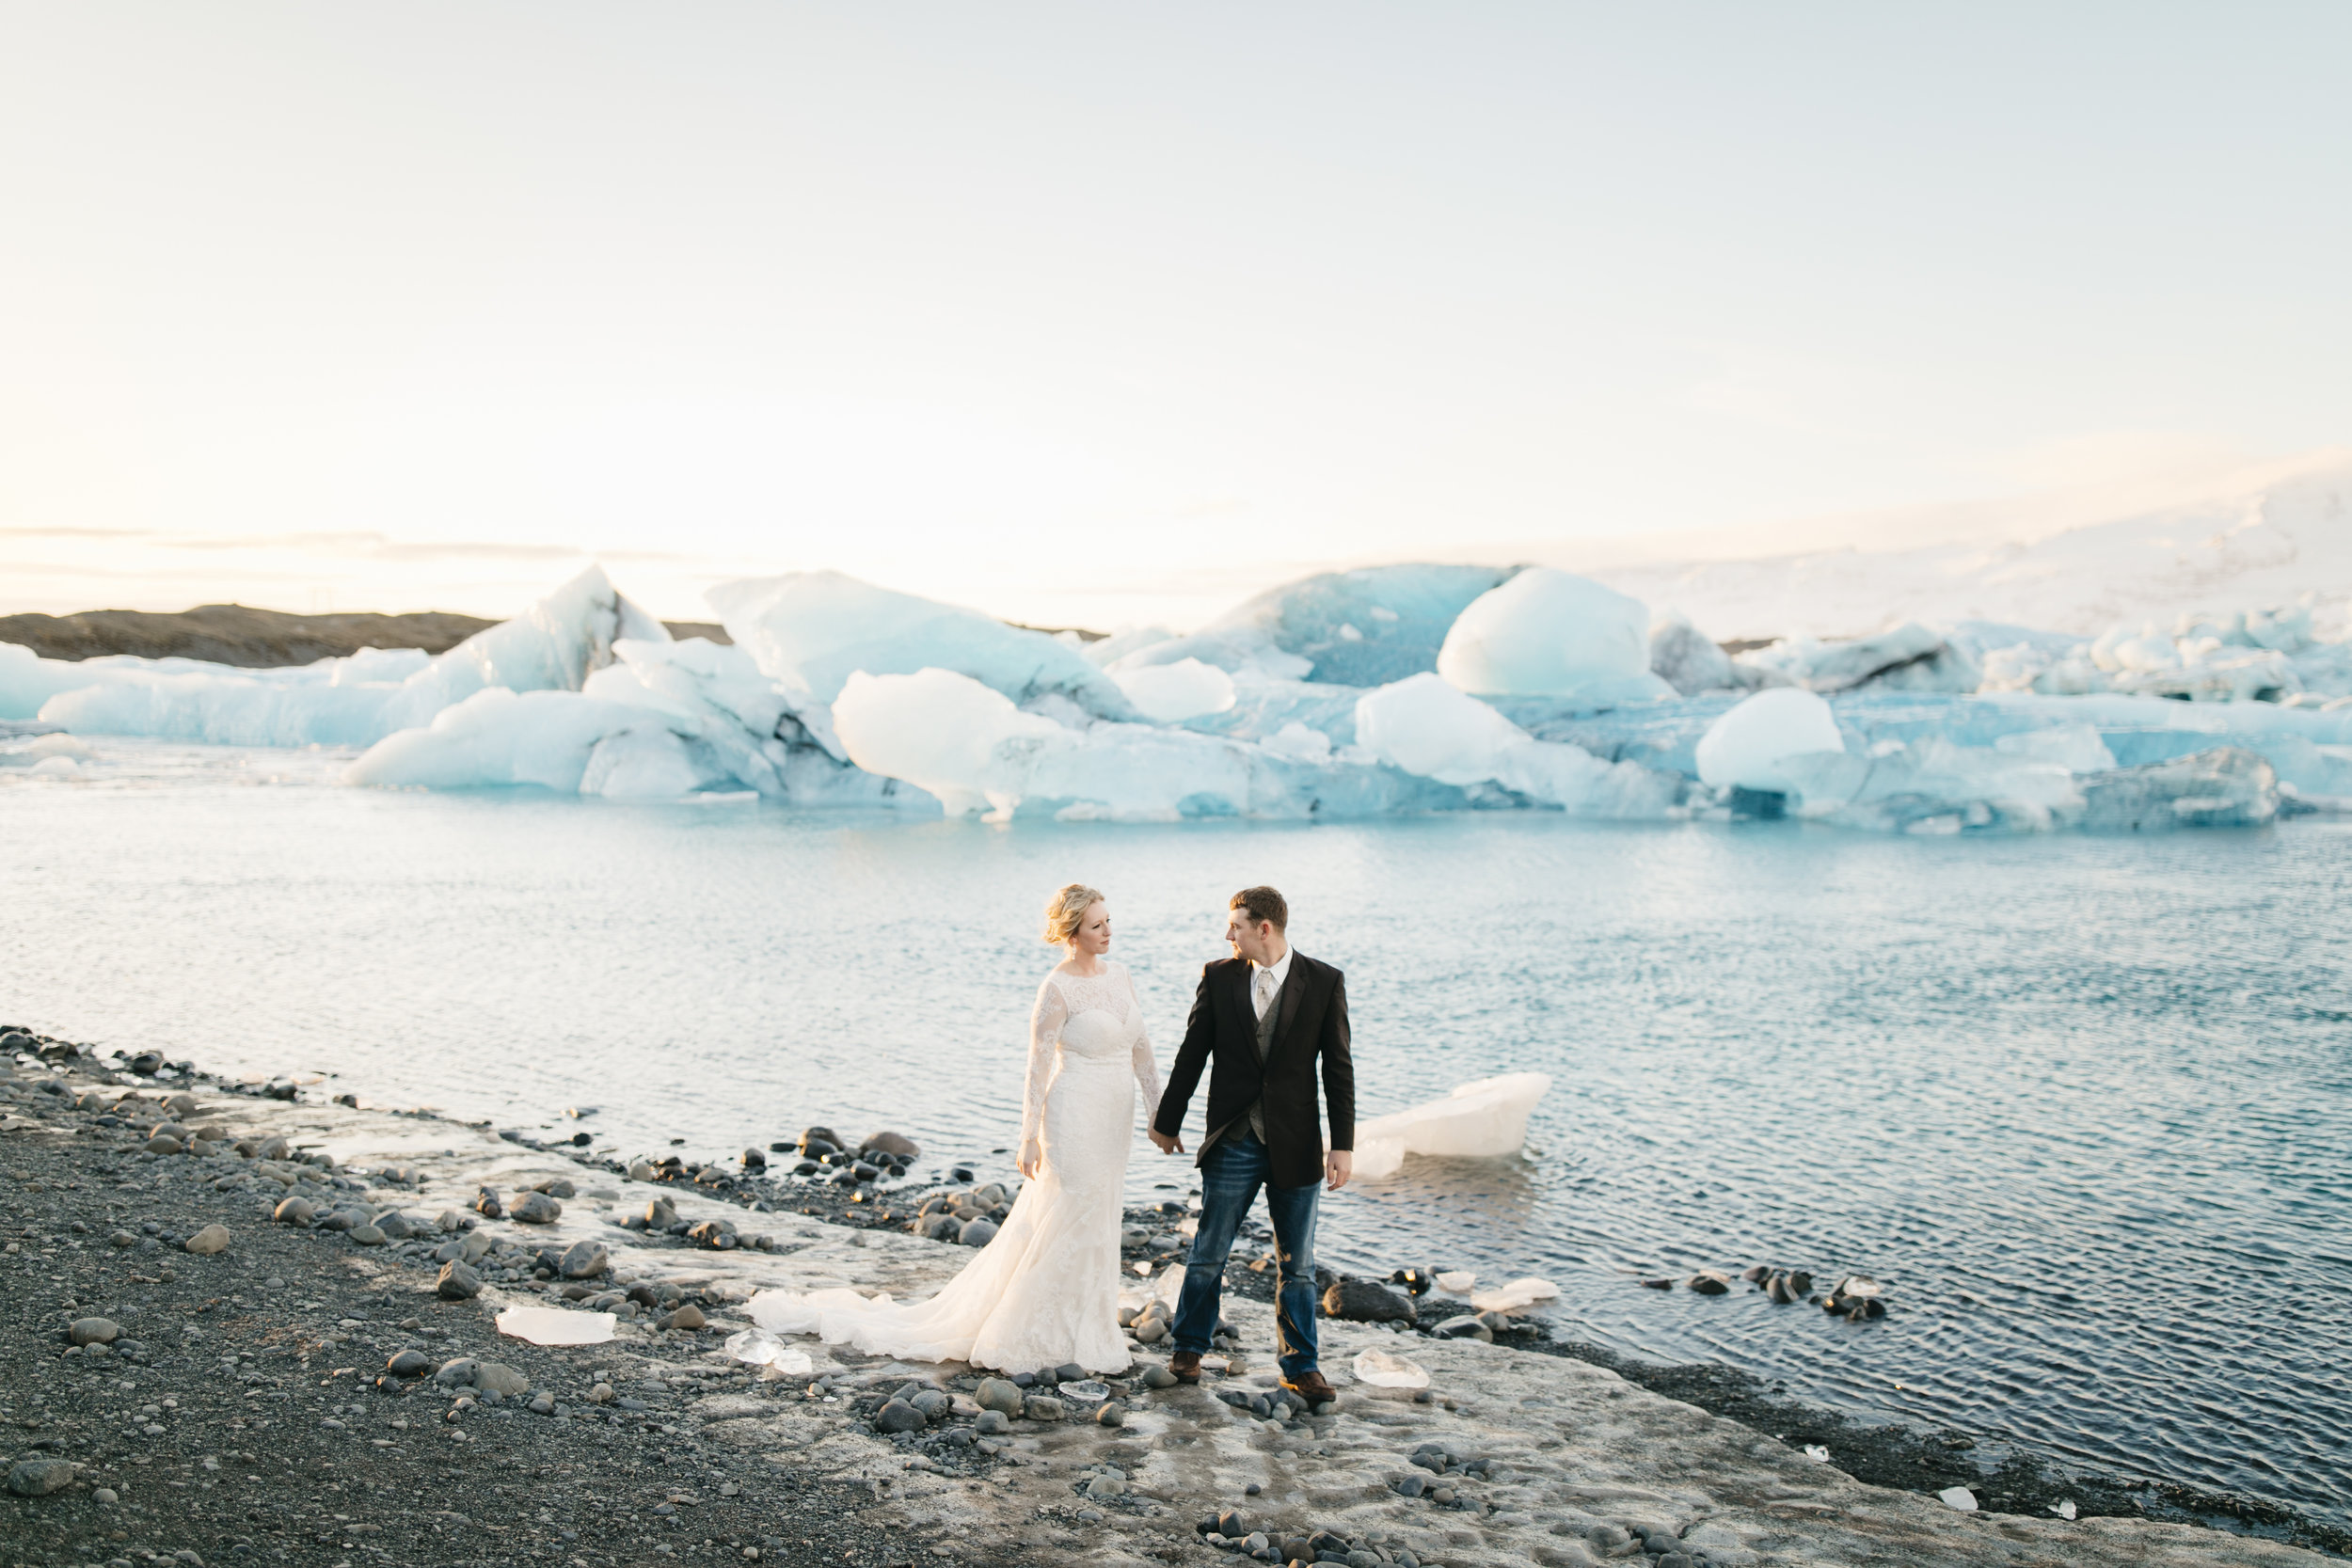 A happy couple walks along beach beside glaciers during Iceland Elopement Photography session by Colby and Jess.